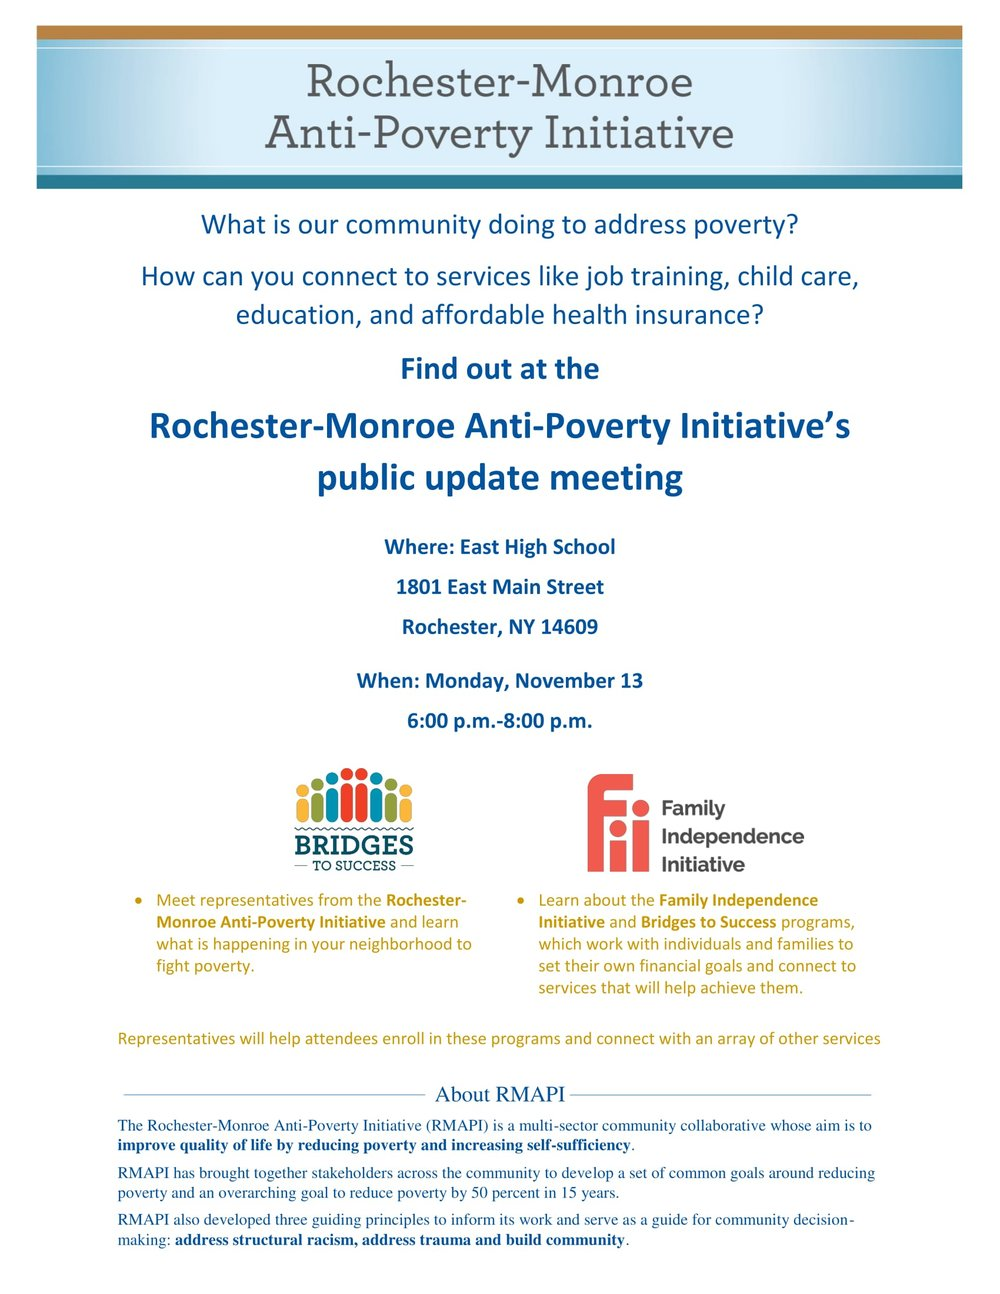 RMAPI Town Hall Flyer Nov 13-1.jpg